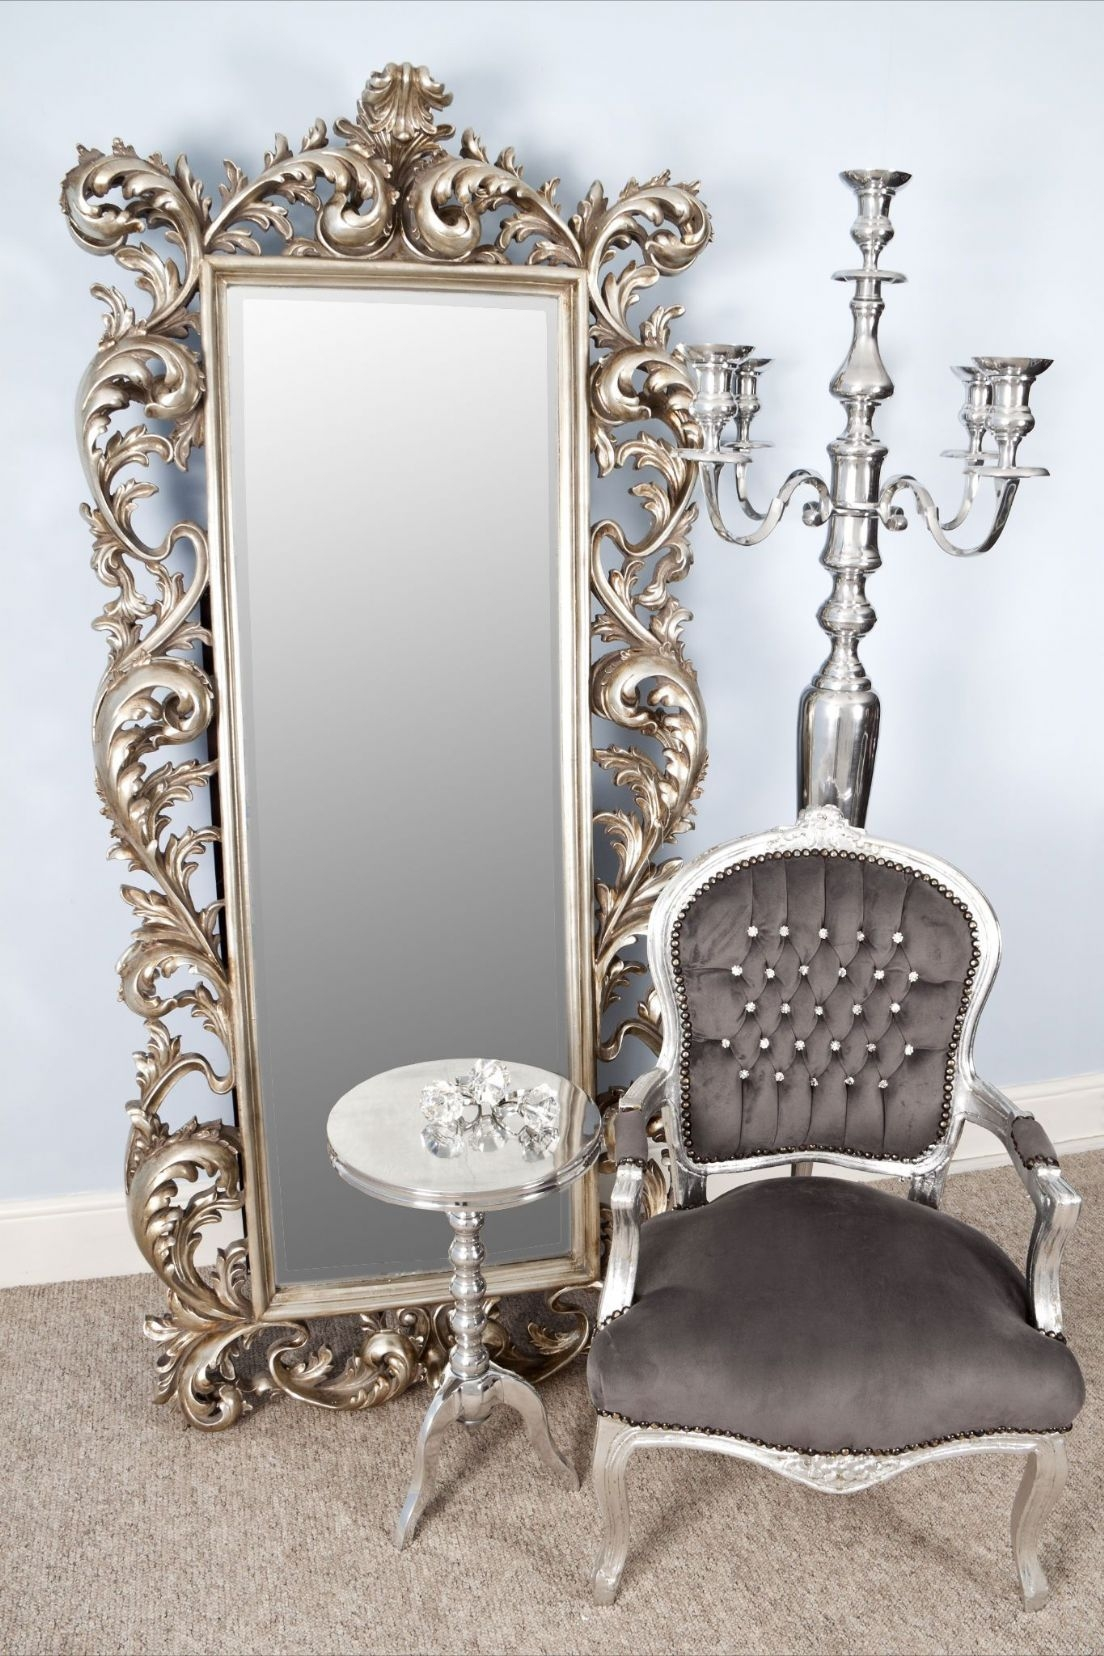 Bedroom Appealing Oversized Mirrors For Home Decoration Ideas Regarding Large Mirror Sale (Image 1 of 15)